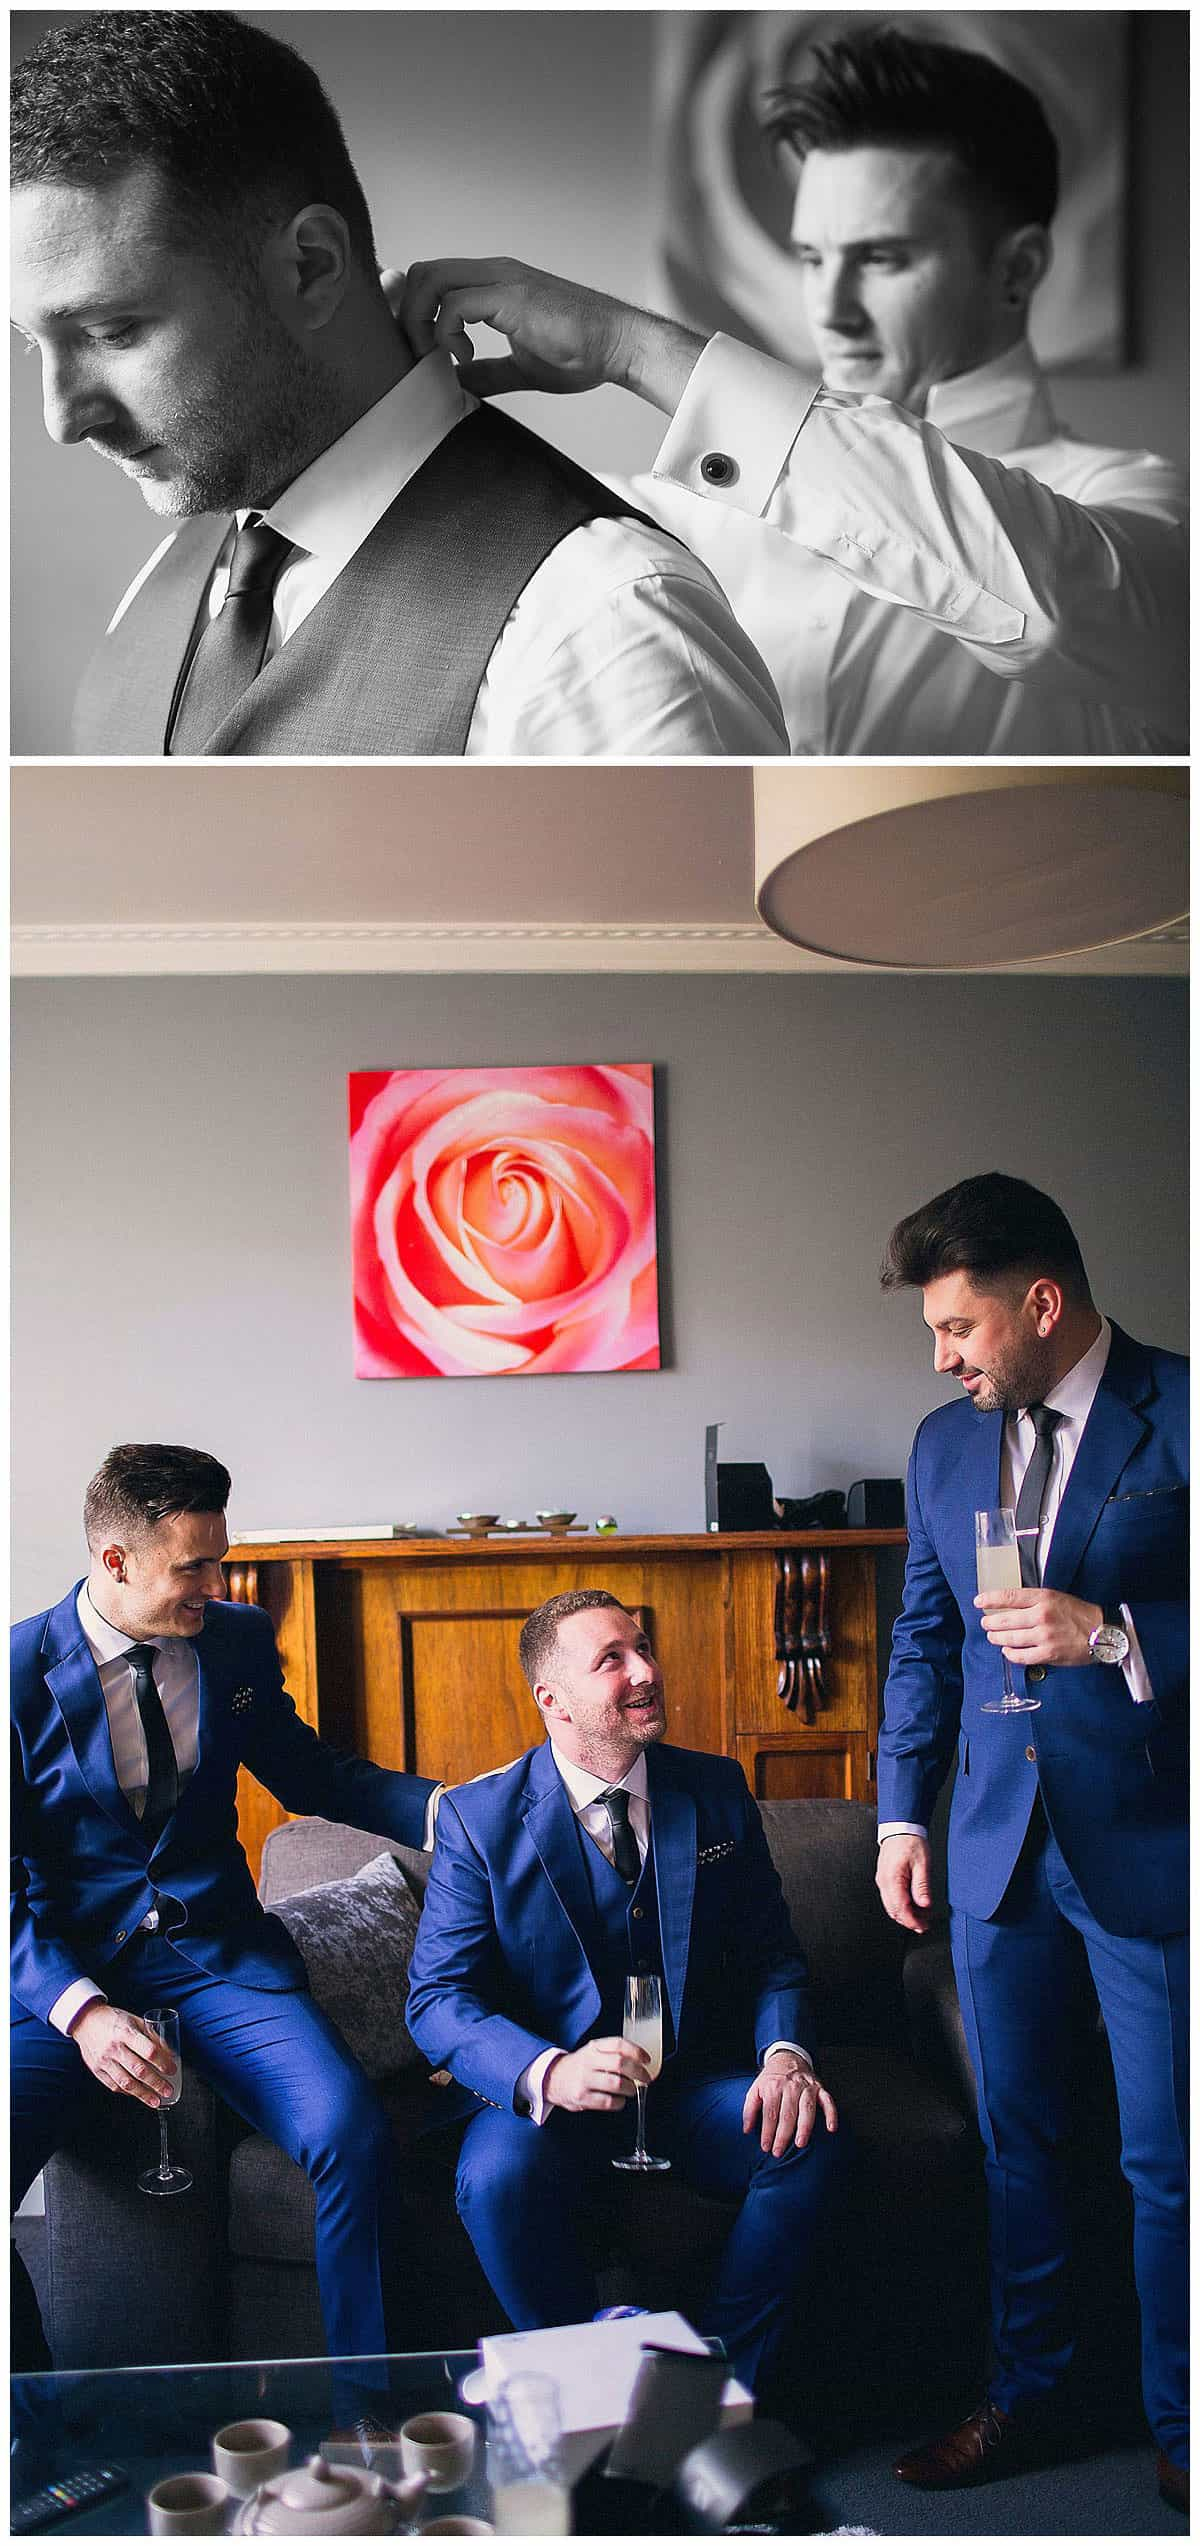 Davor and his groomsmen relaxing before the ceremony